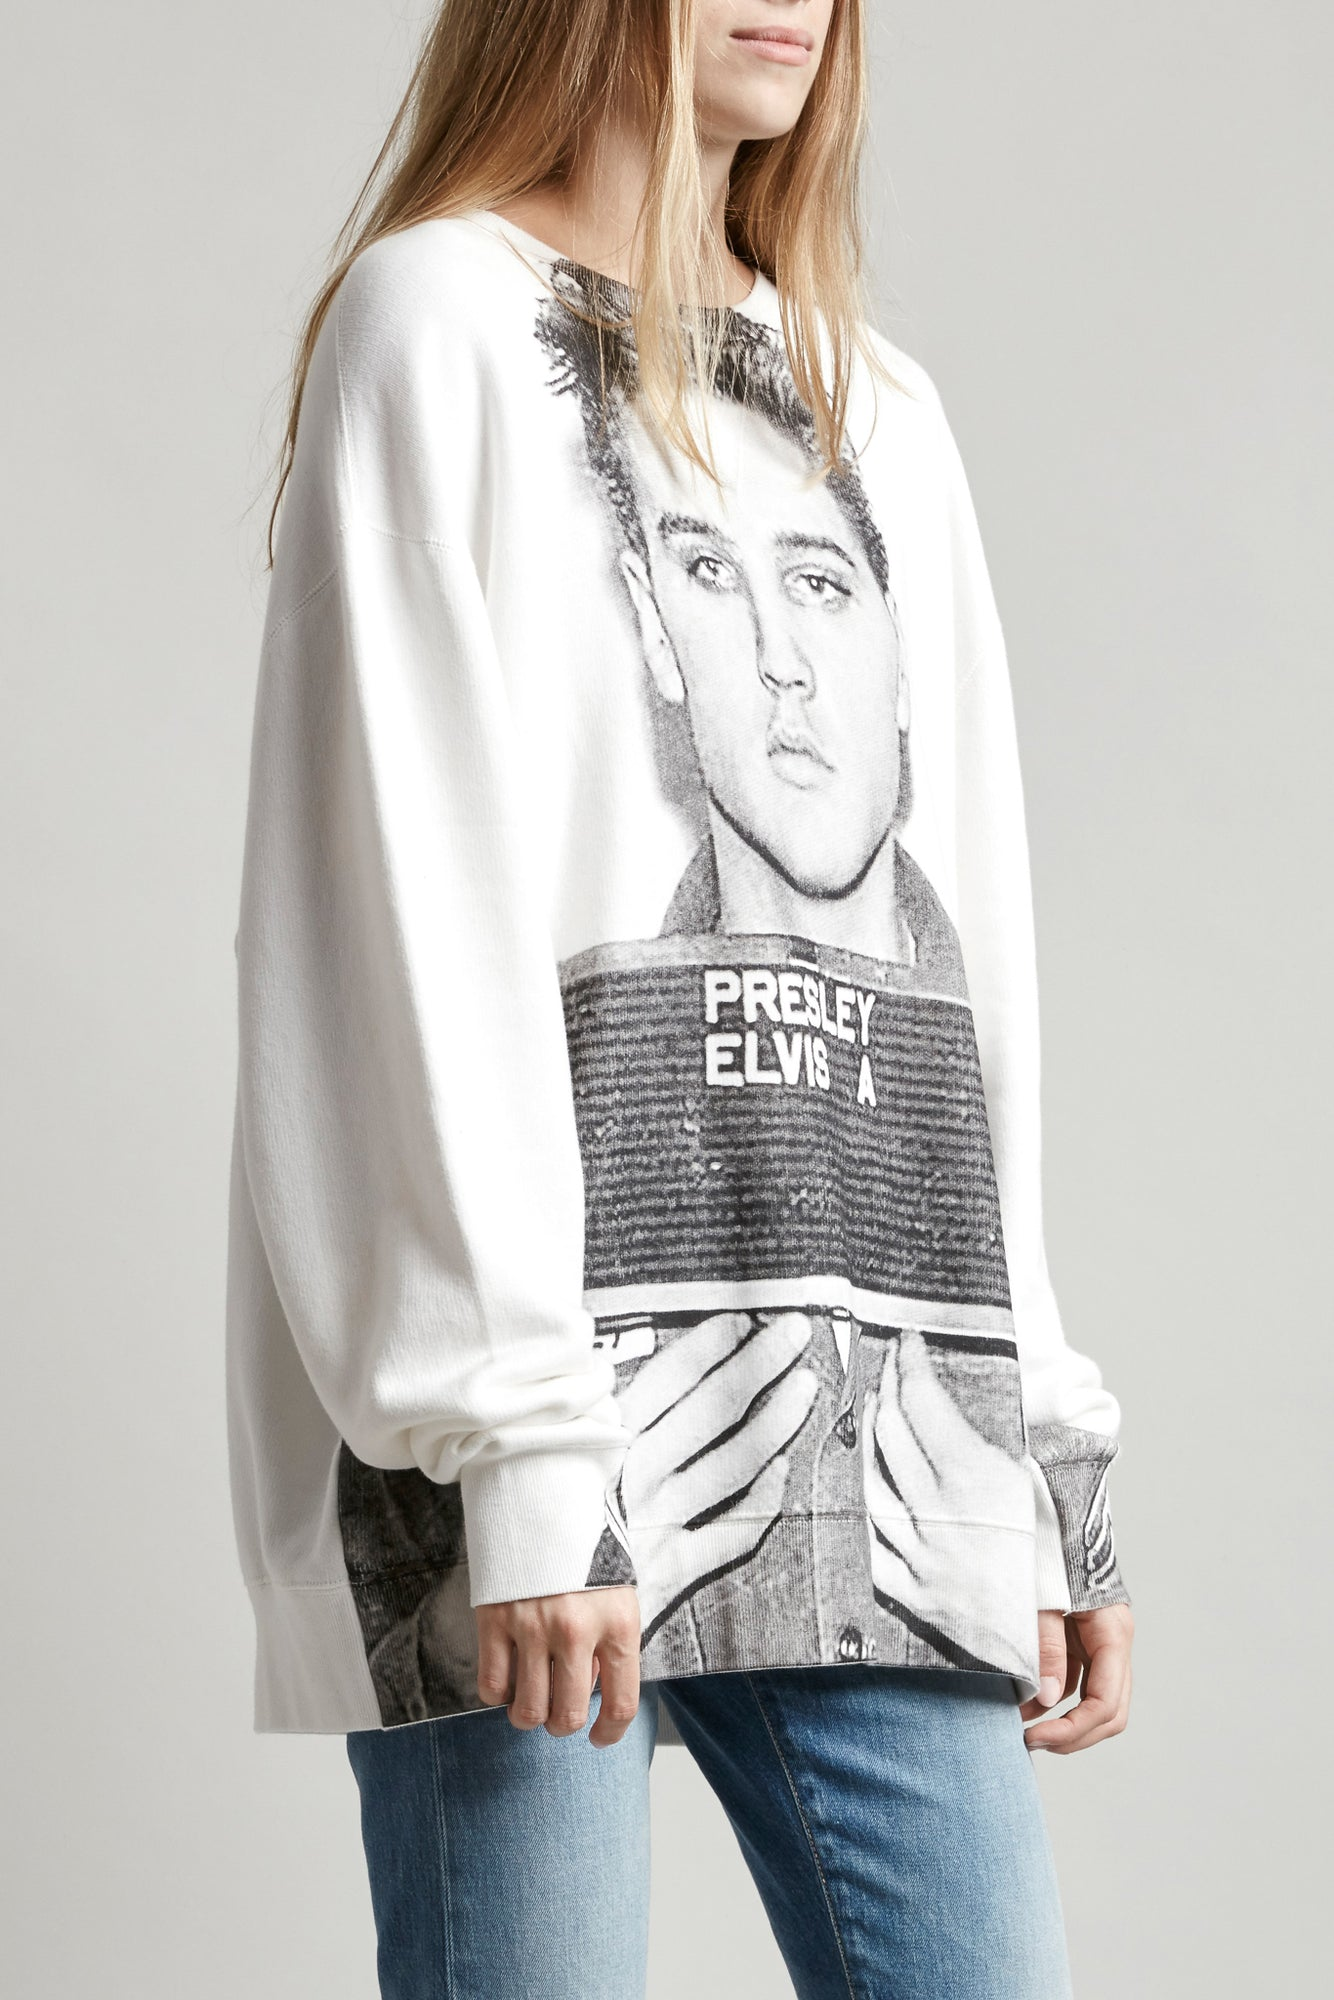 R13 oversized crewneck sweatshirt in white with Elvis mugshot graphic